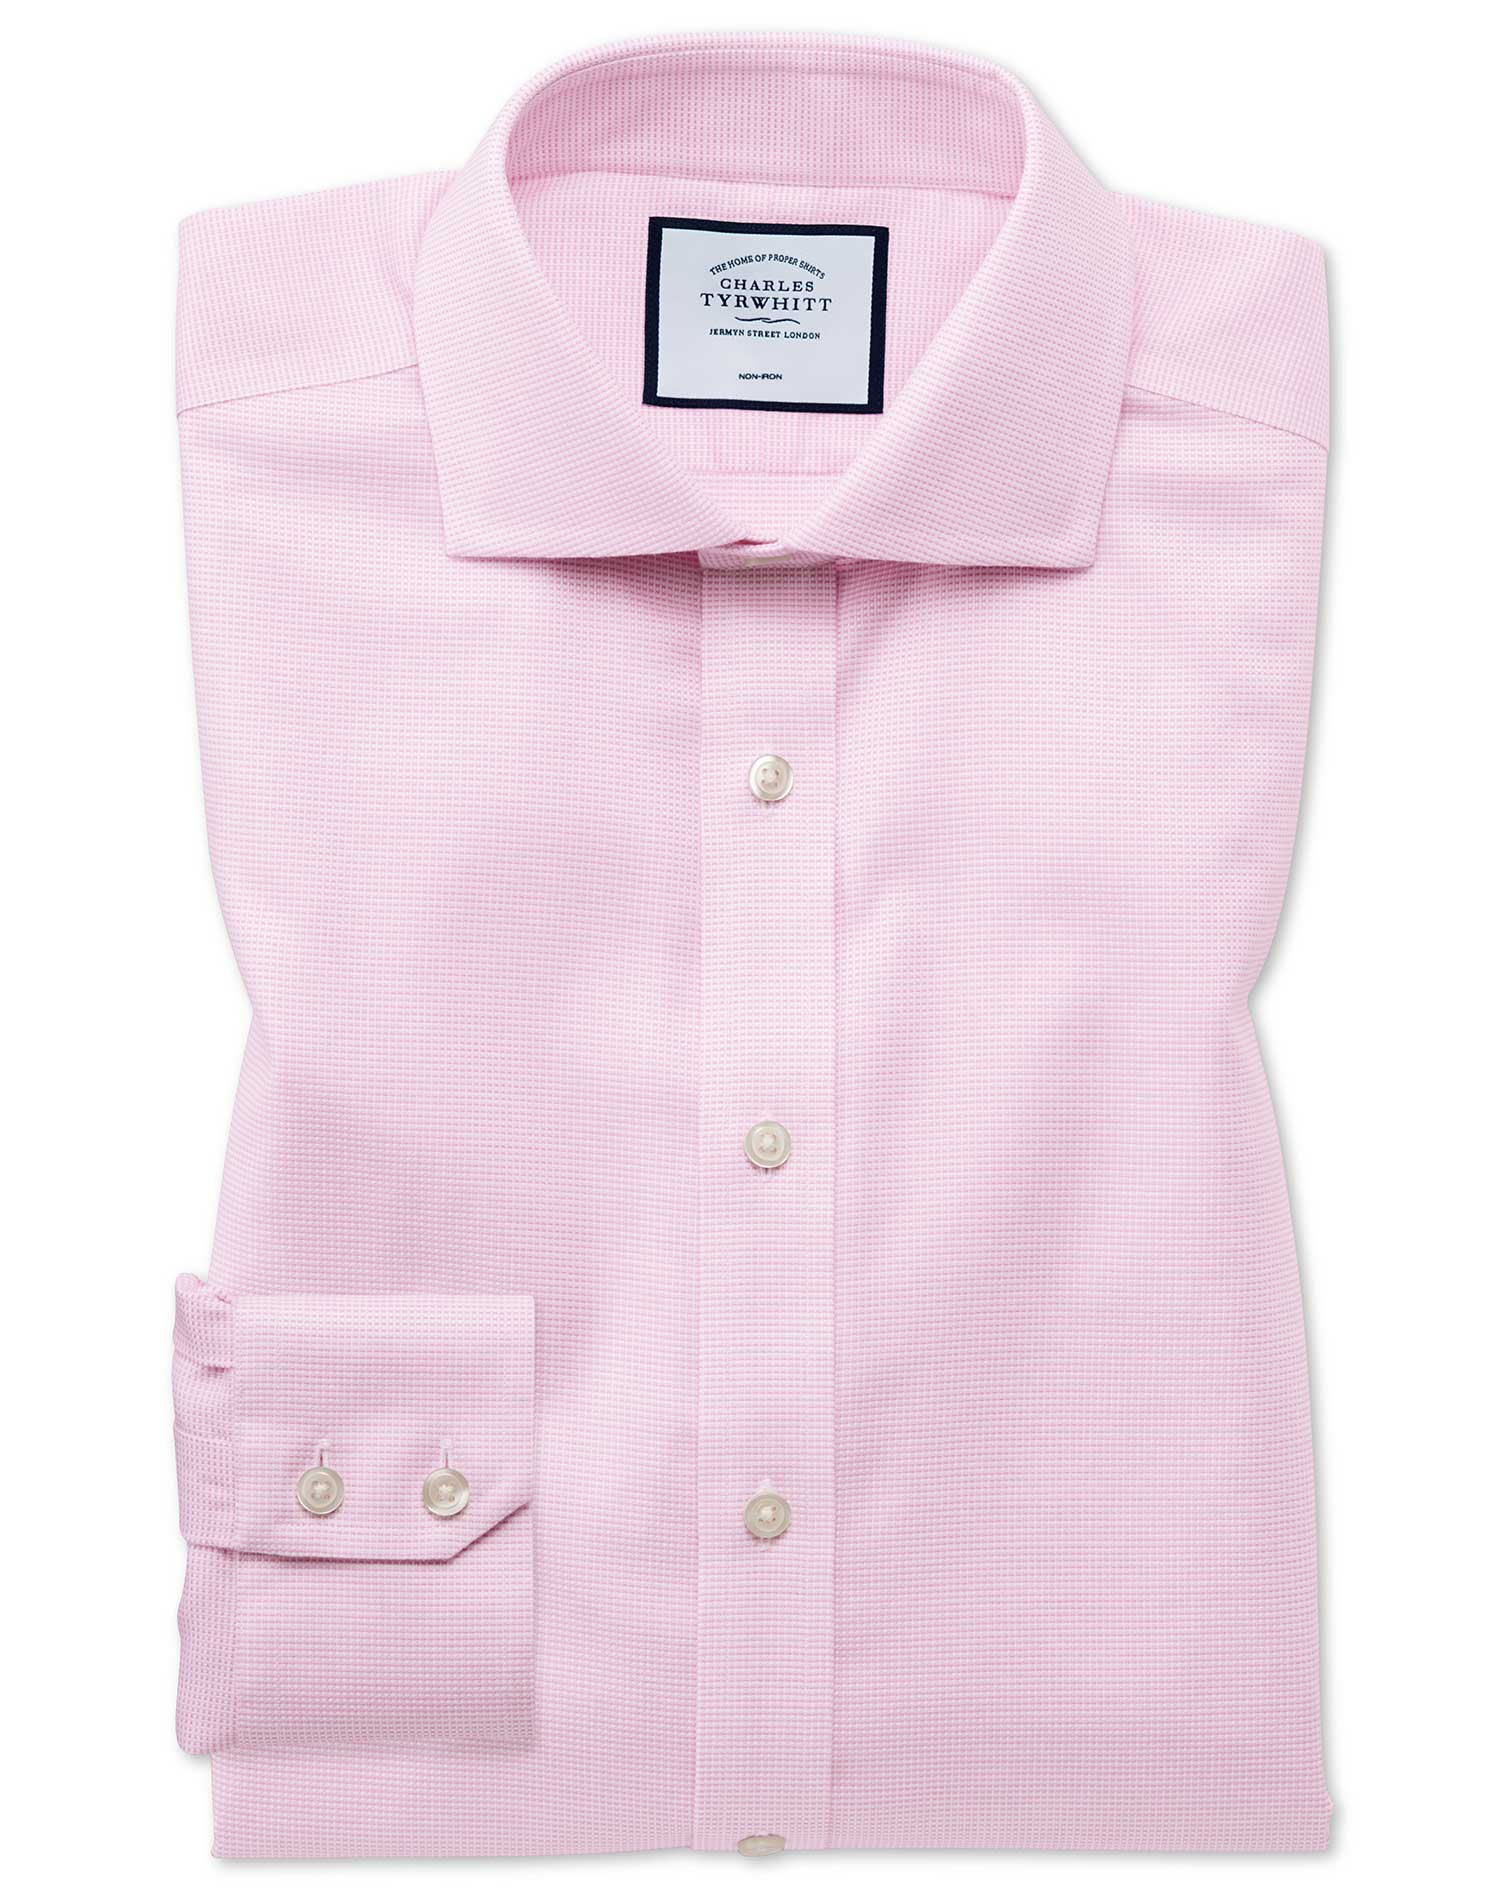 Extra Slim Fit Non-Iron Cotton Stretch Oxford Pink Formal Shirt Single Cuff Size 16/36 by Charles Ty